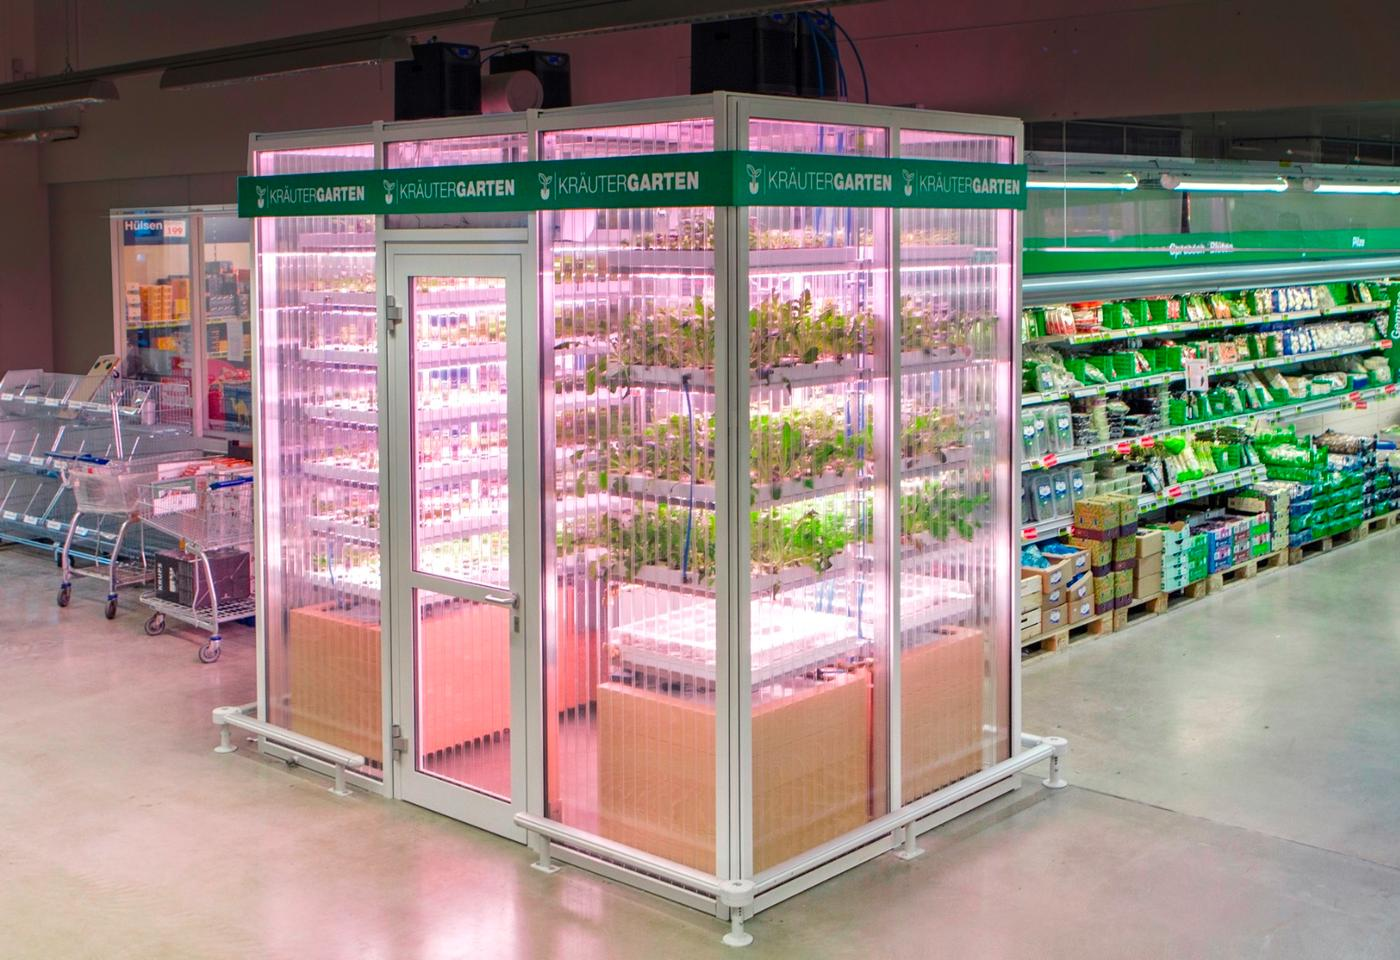 The INFARM is part of a pilot project at the METRO Cash & Carry wholesale store in the Berlin district of Friedrichshain